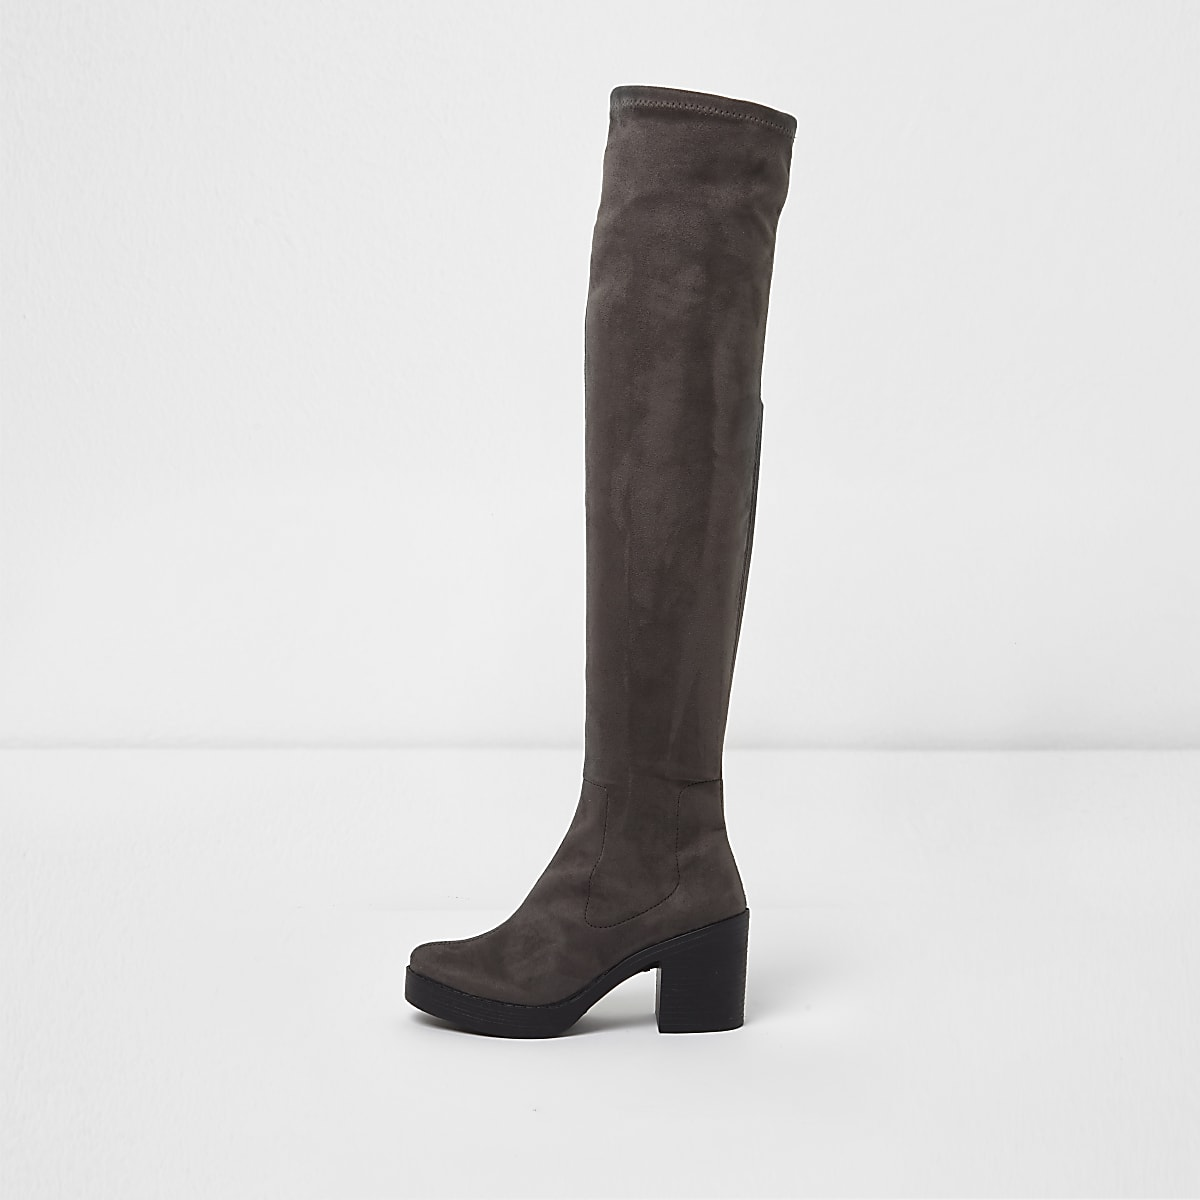 adc6957a186 Grey chunky sole over the knee boots - Boots - Shoes   Boots - women